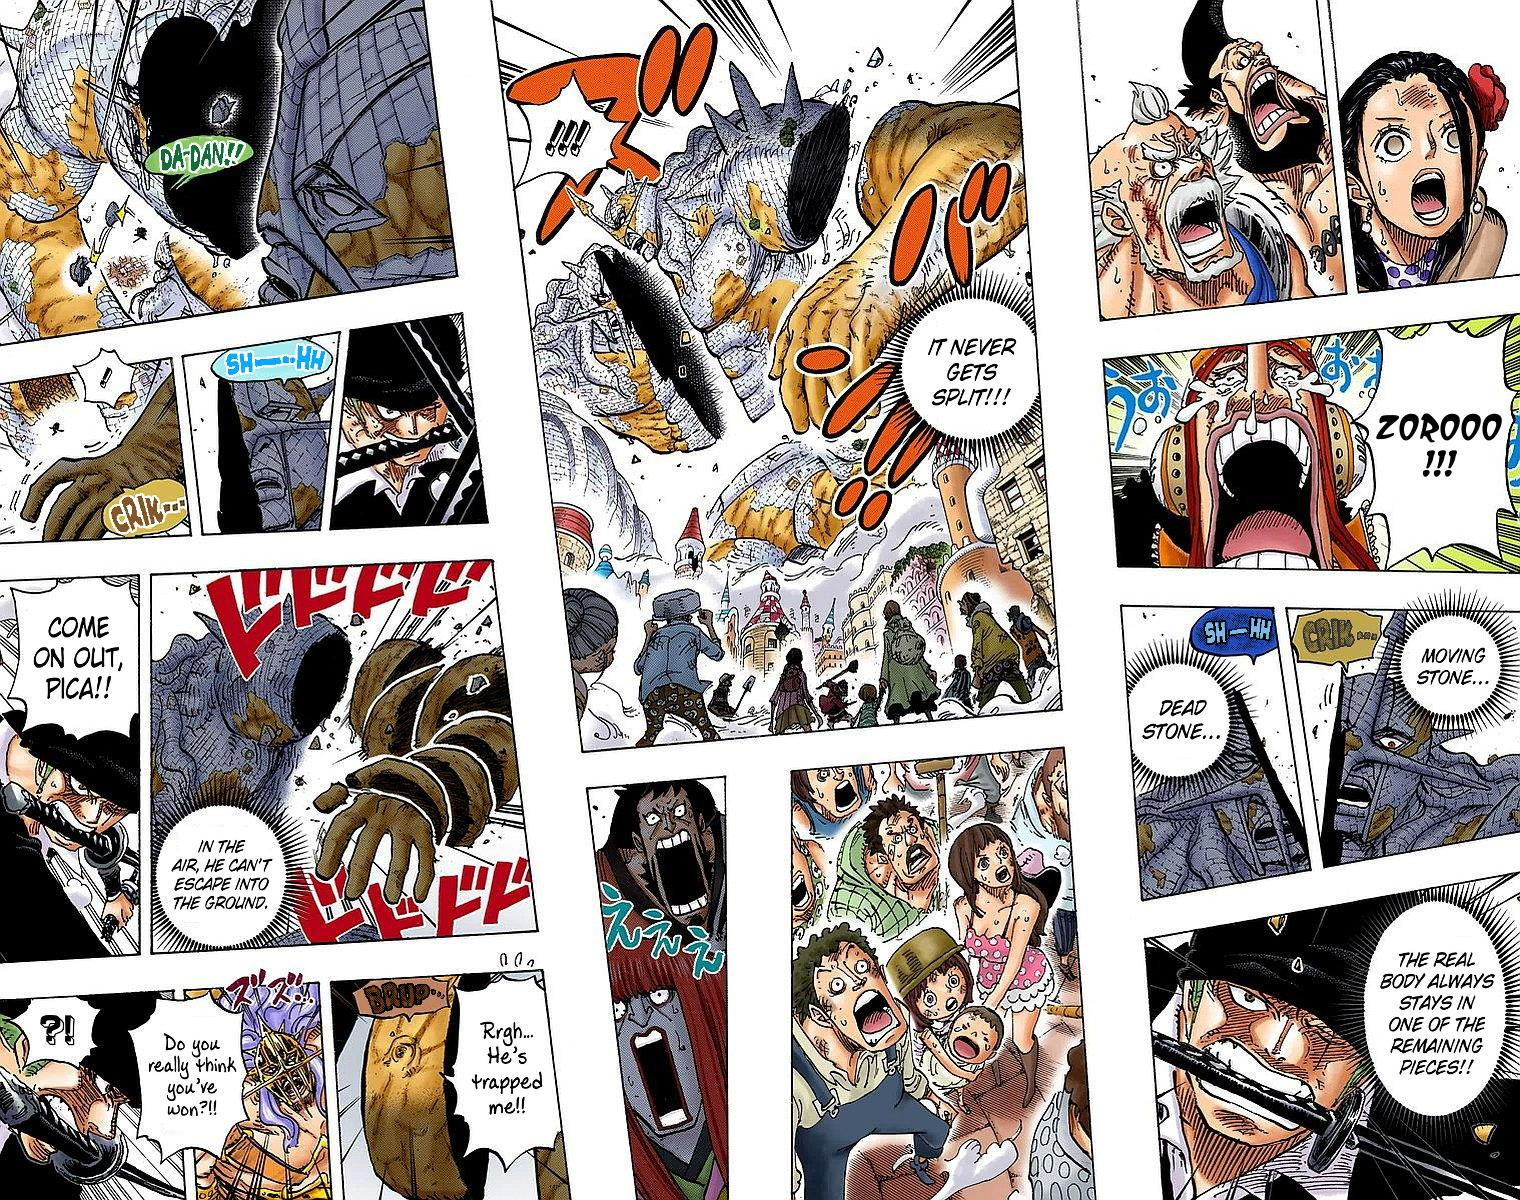 One Piece, Chapter 778 - One Piece Manga Online - Colored